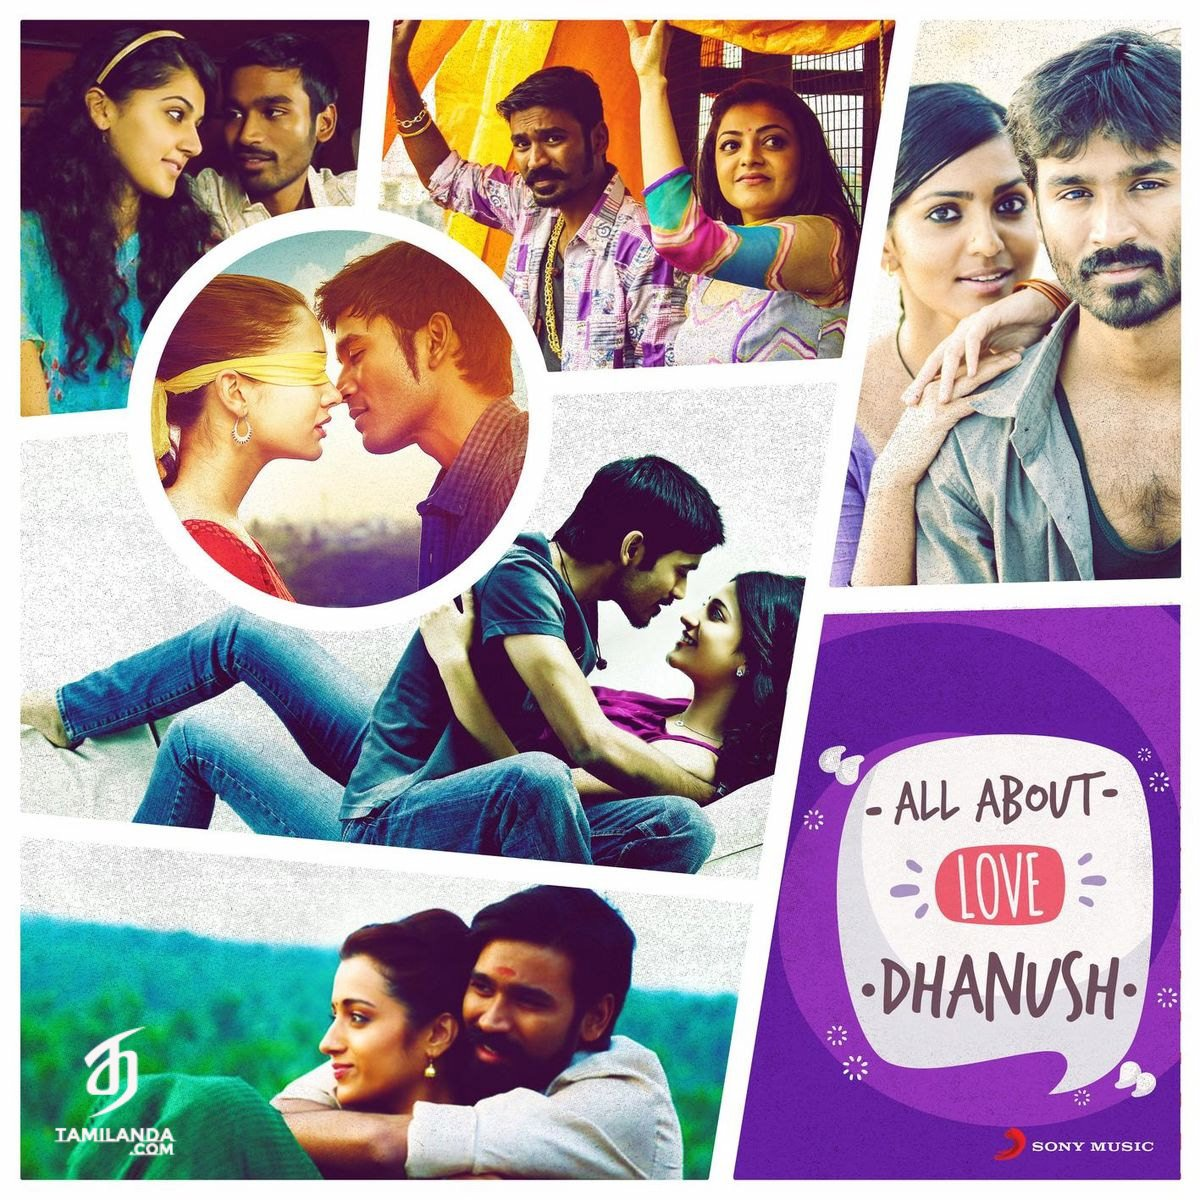 All About Love: Dhanush FLAC Songs